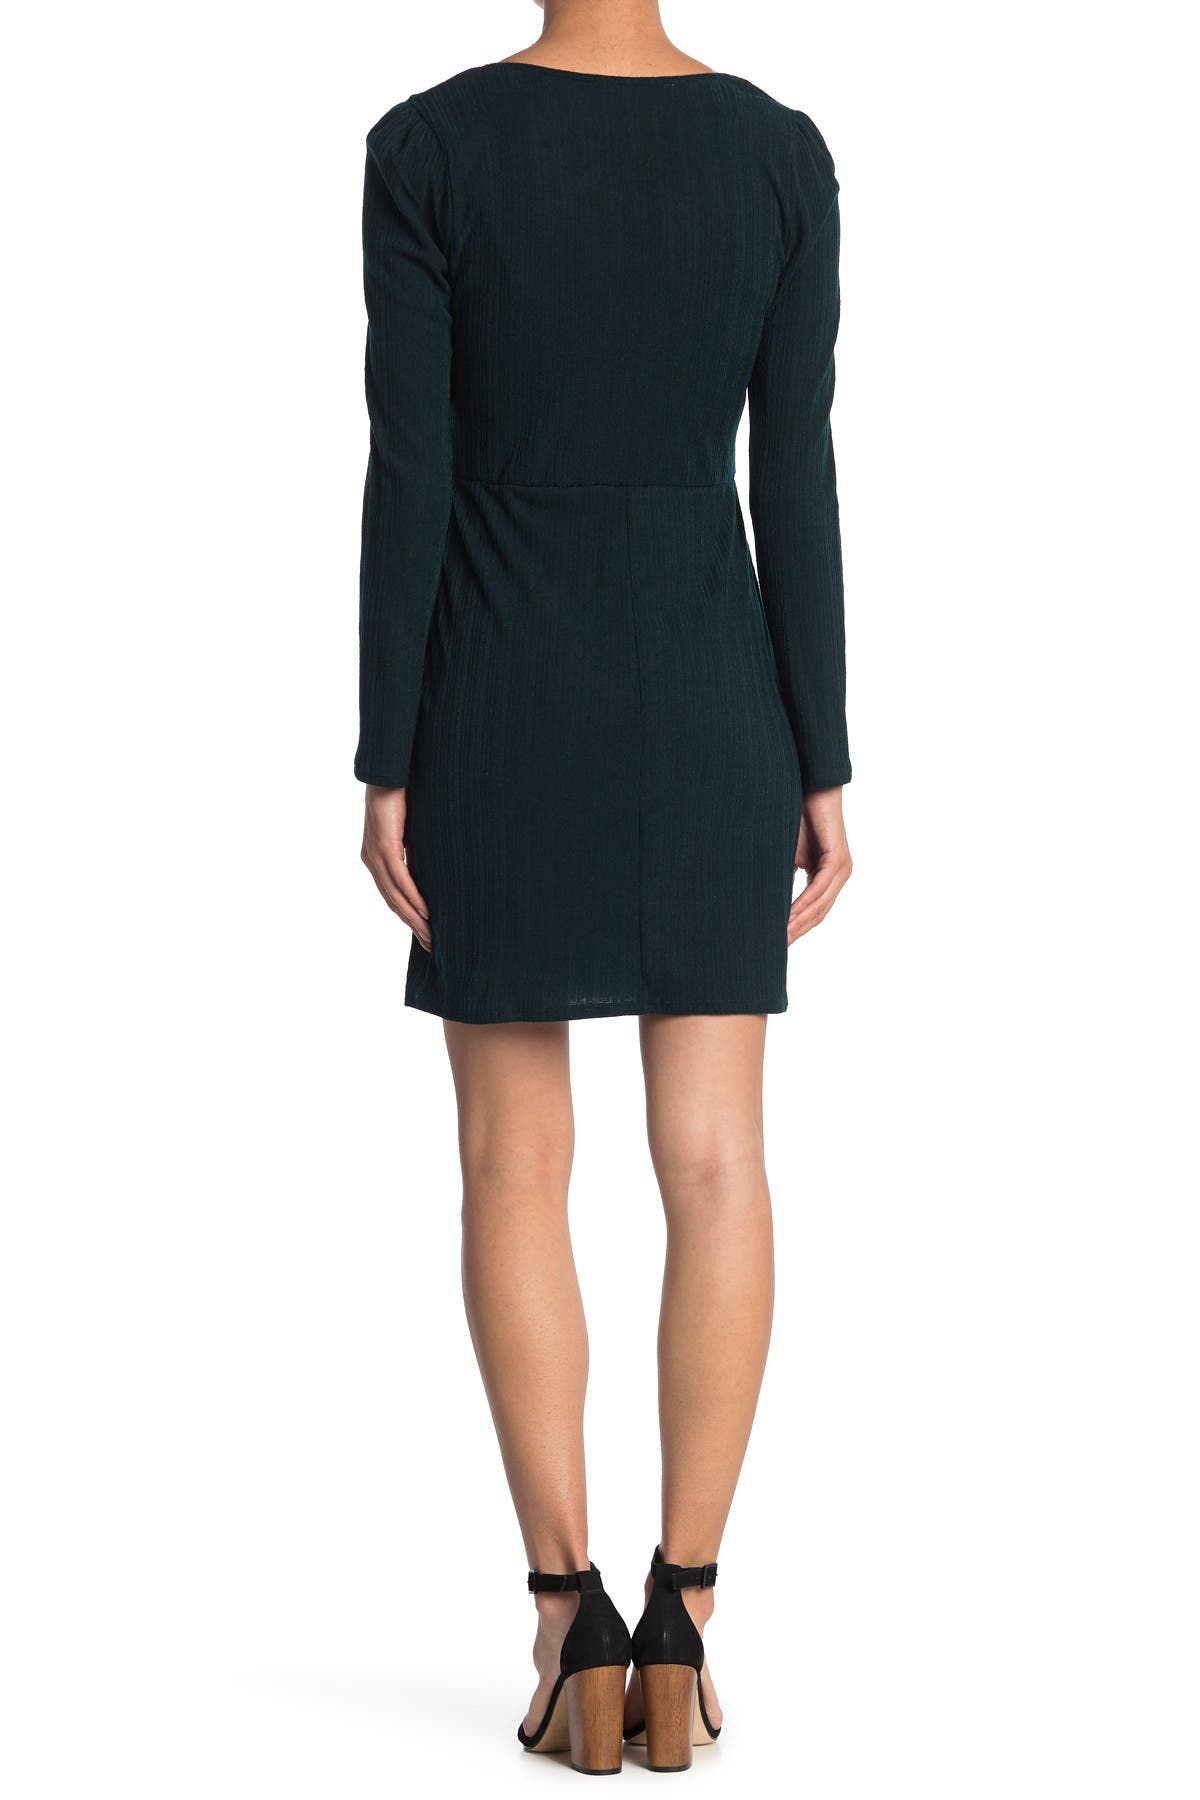 Image of ROW A Ribbed Scoop Mini Dress